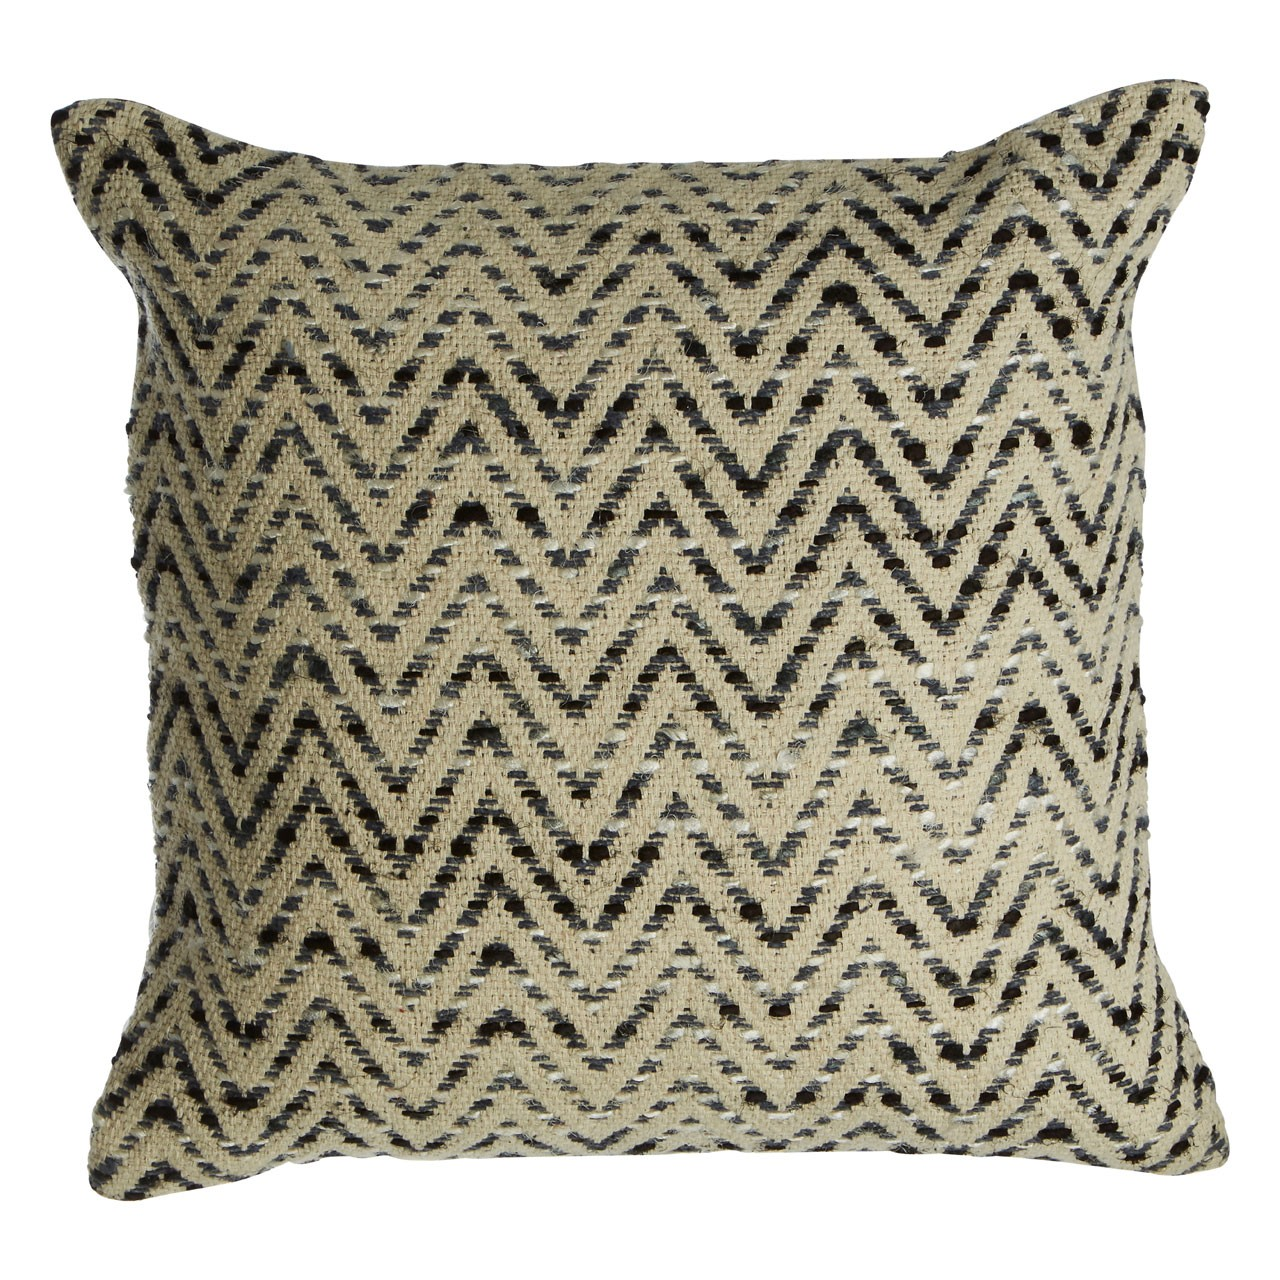 Prime Furnishing Bosie woven Chevron Cushion - Grey